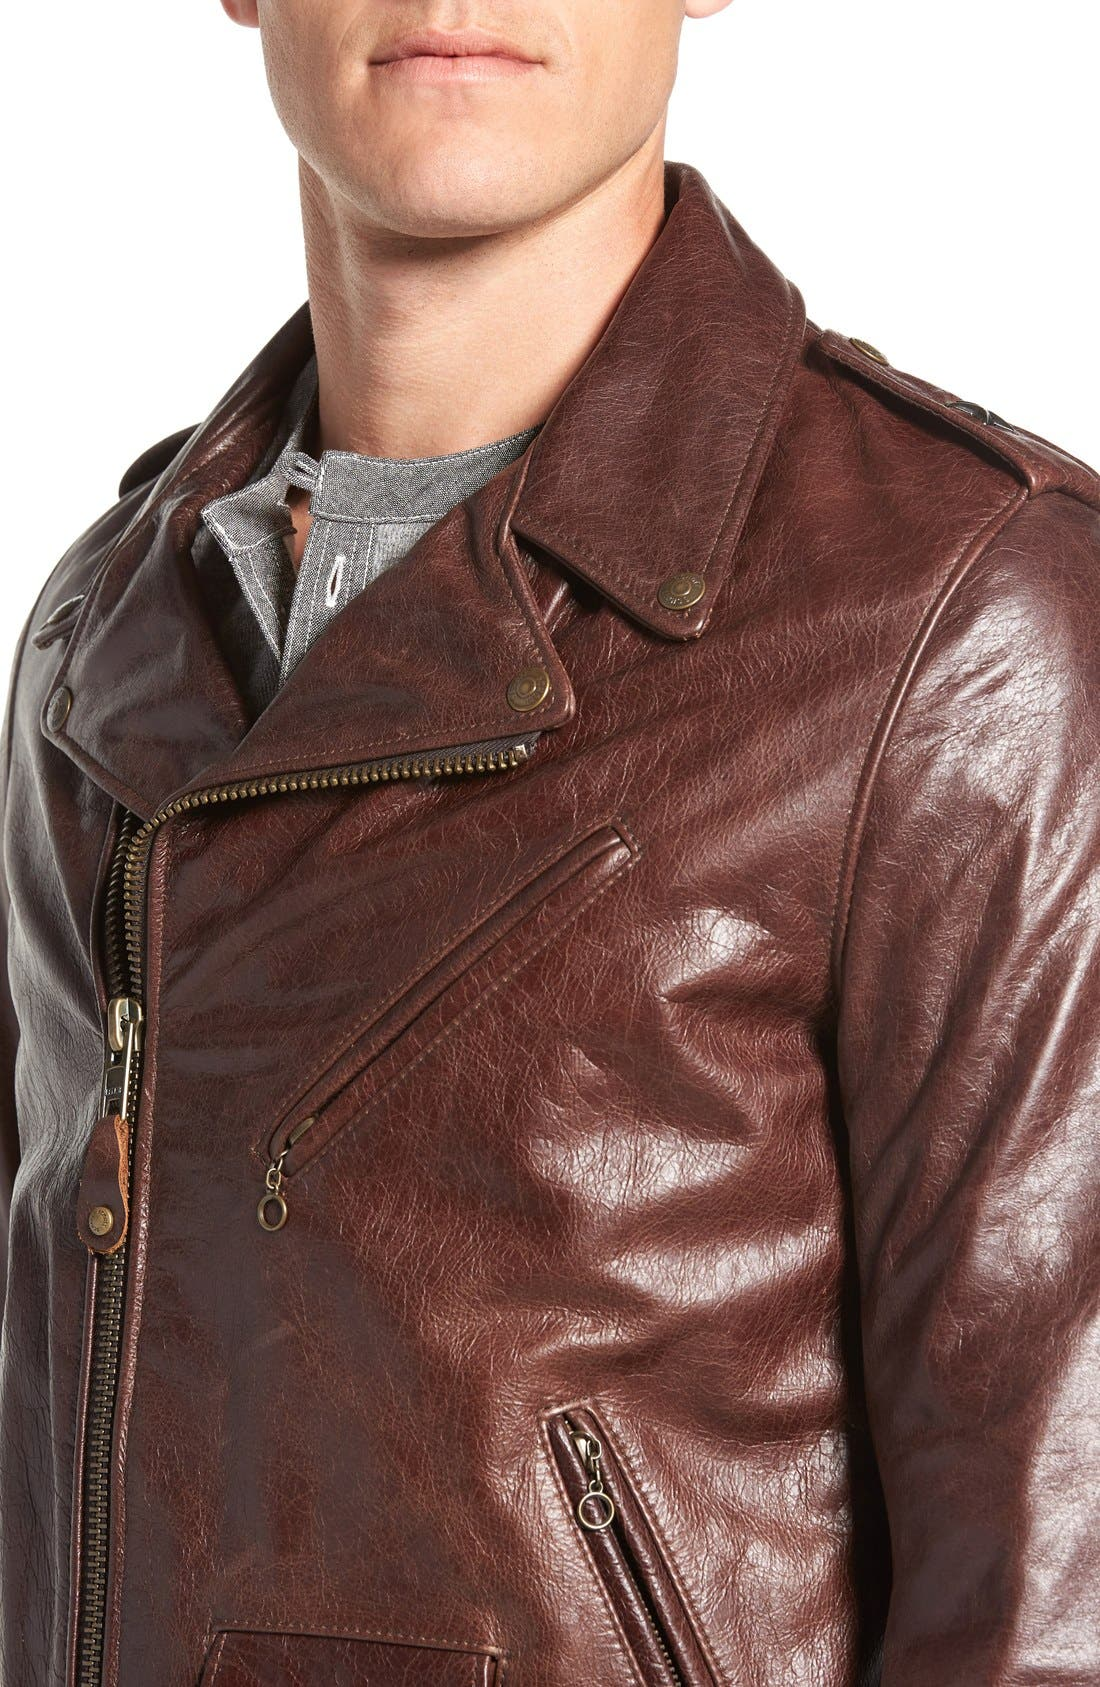 Waxy Cowhide Leather Motorcycle Jacket,                             Alternate thumbnail 10, color,                             BROWN